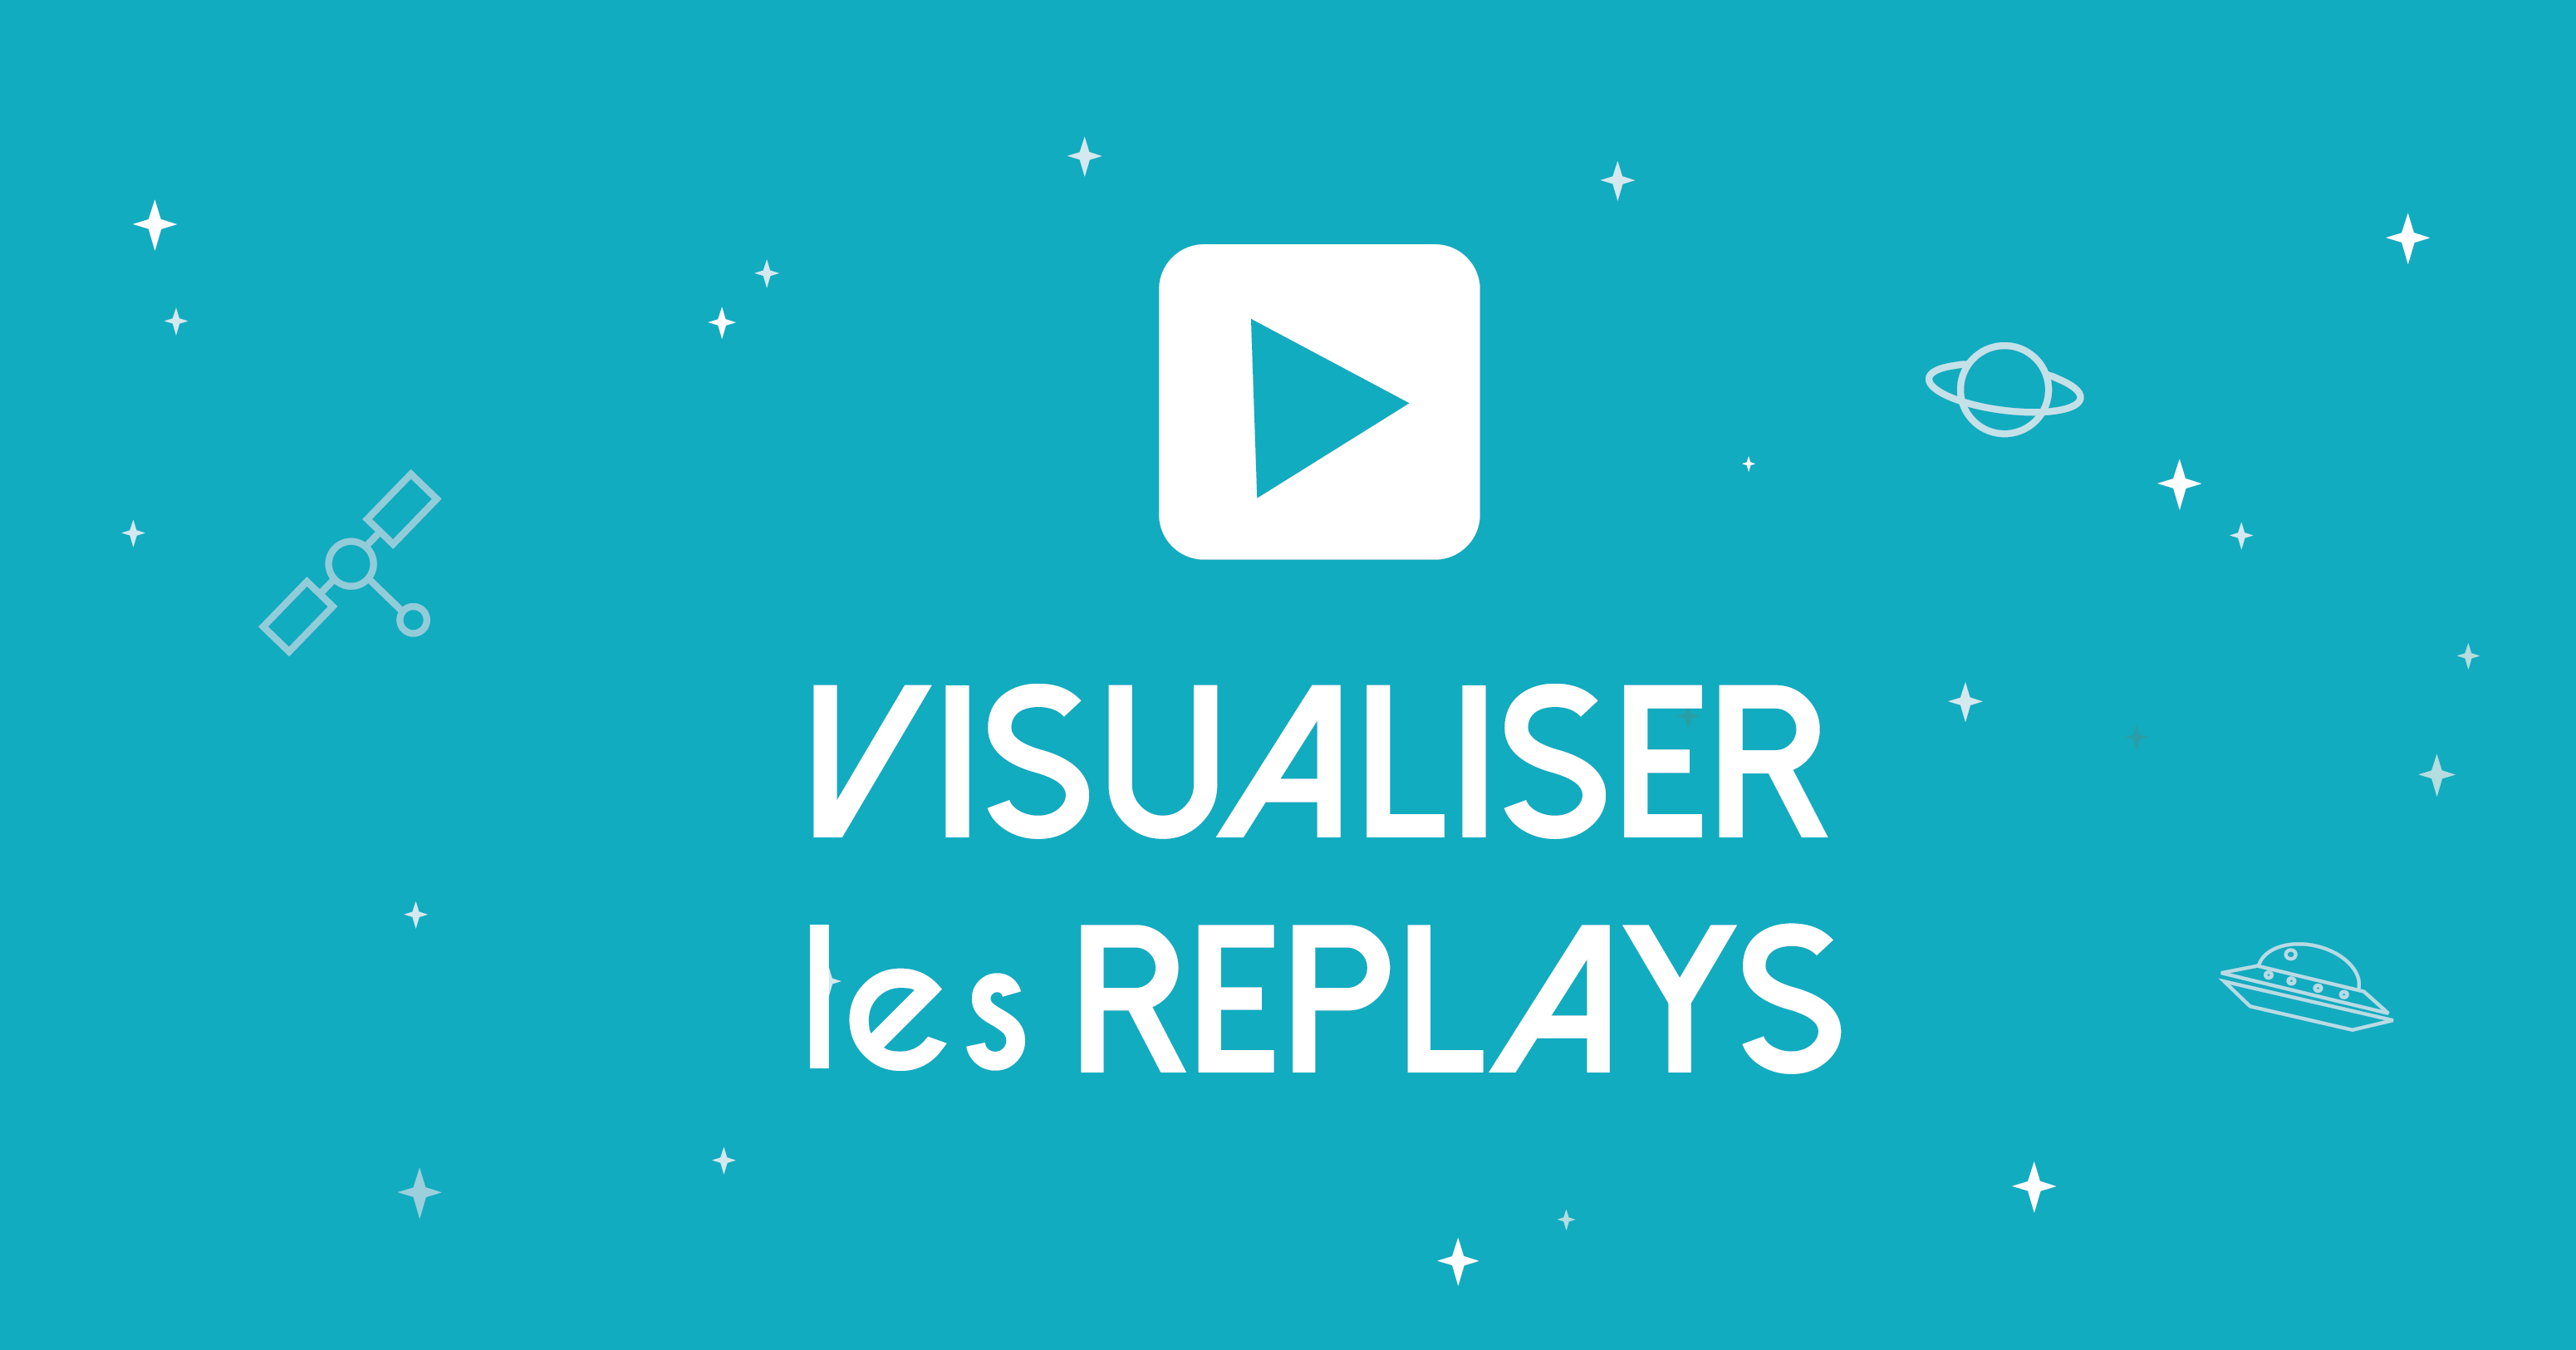 replays des webinars groupe constellation